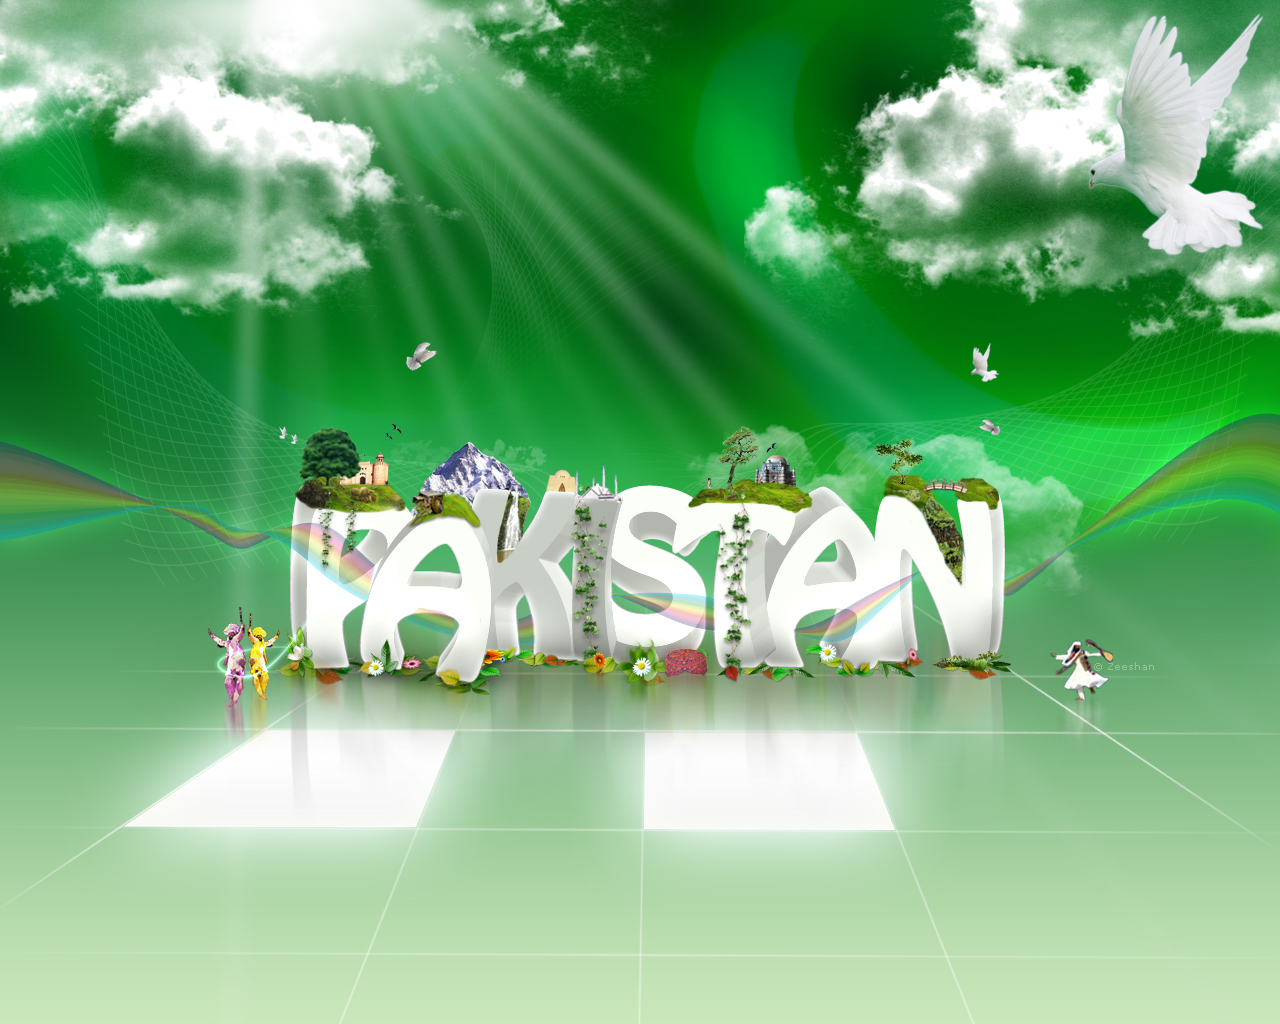 Pakistan Day Wallpapers Gallery   23 March 2012   XciteFunnet 1280x1024